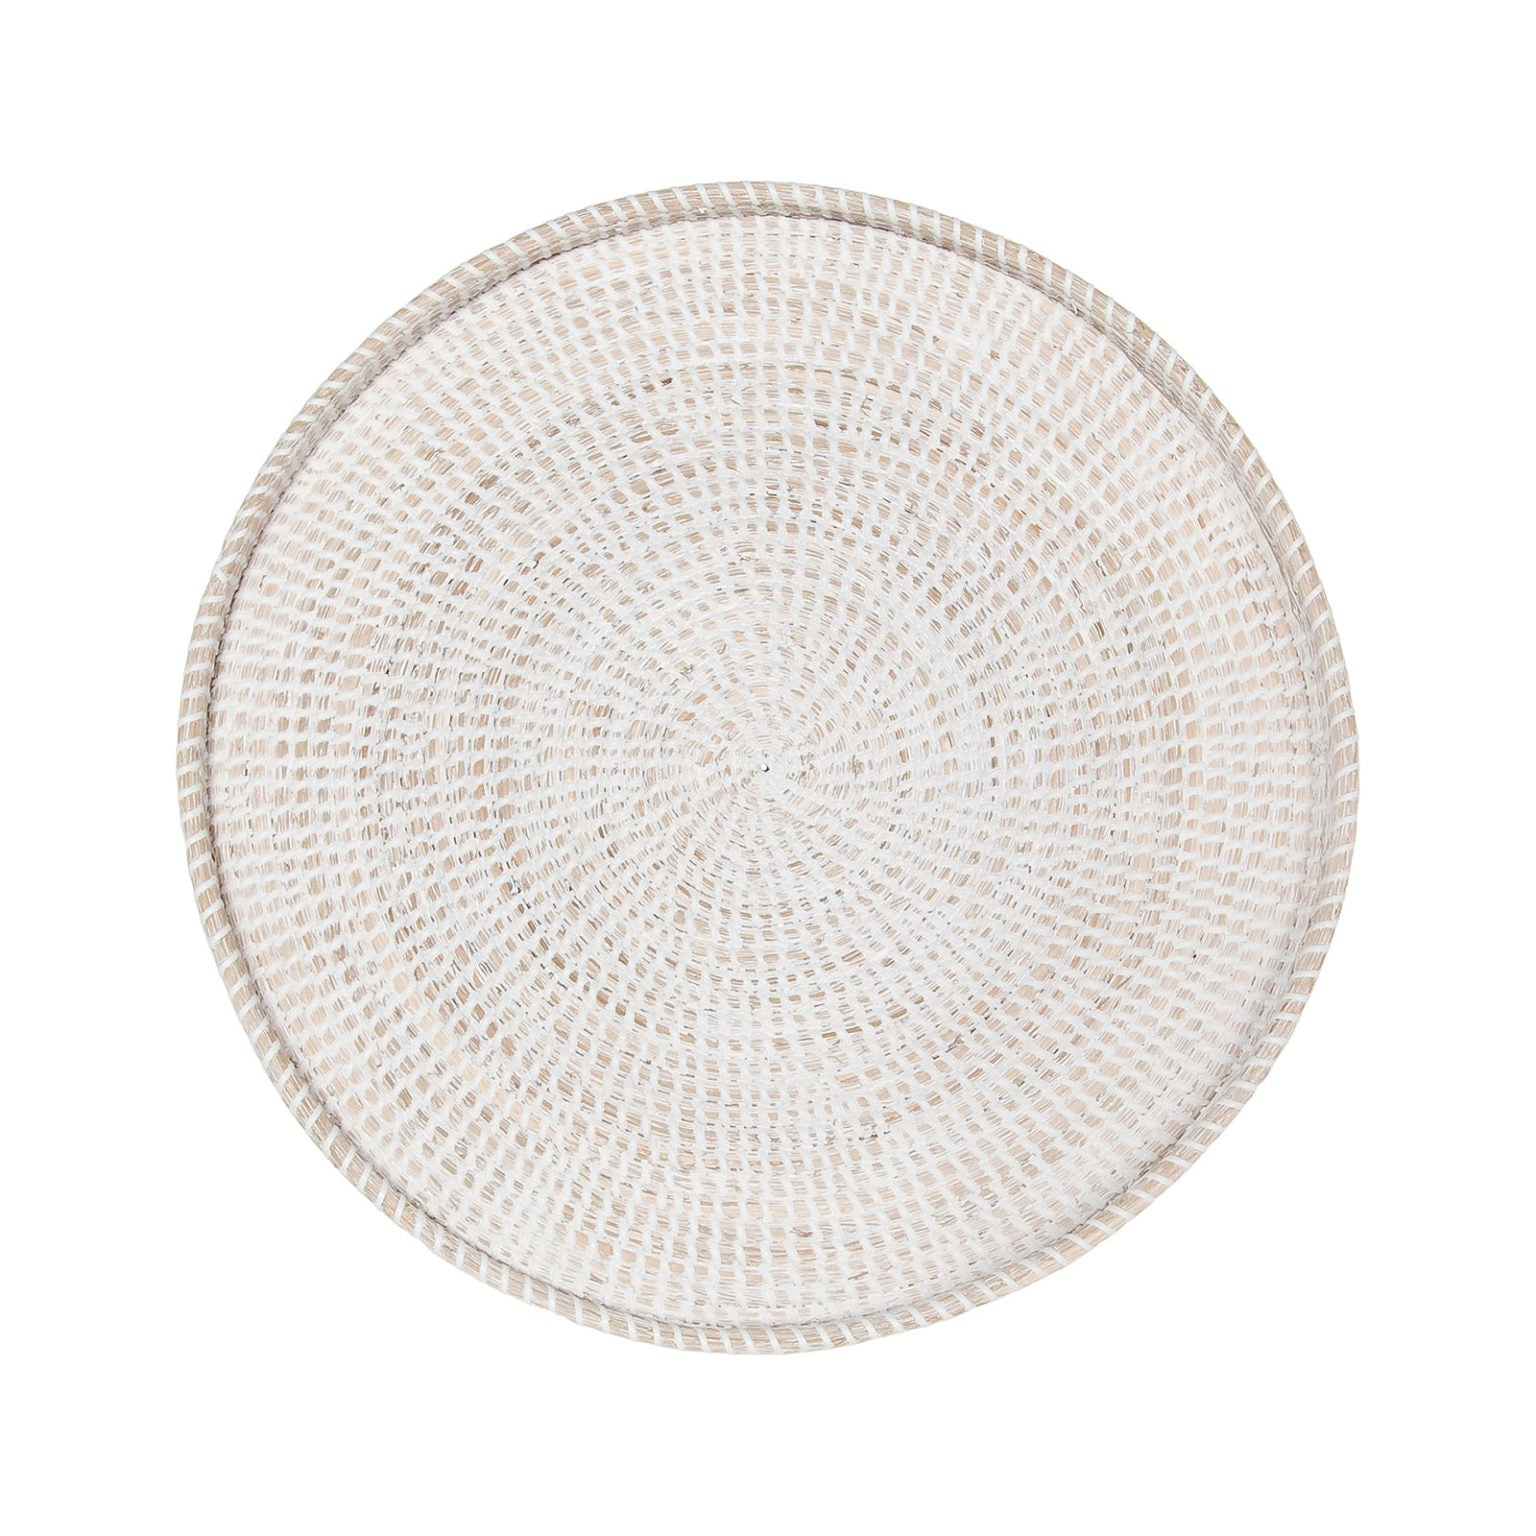 "Vina 22"" Wall Tray  - Whitewash"